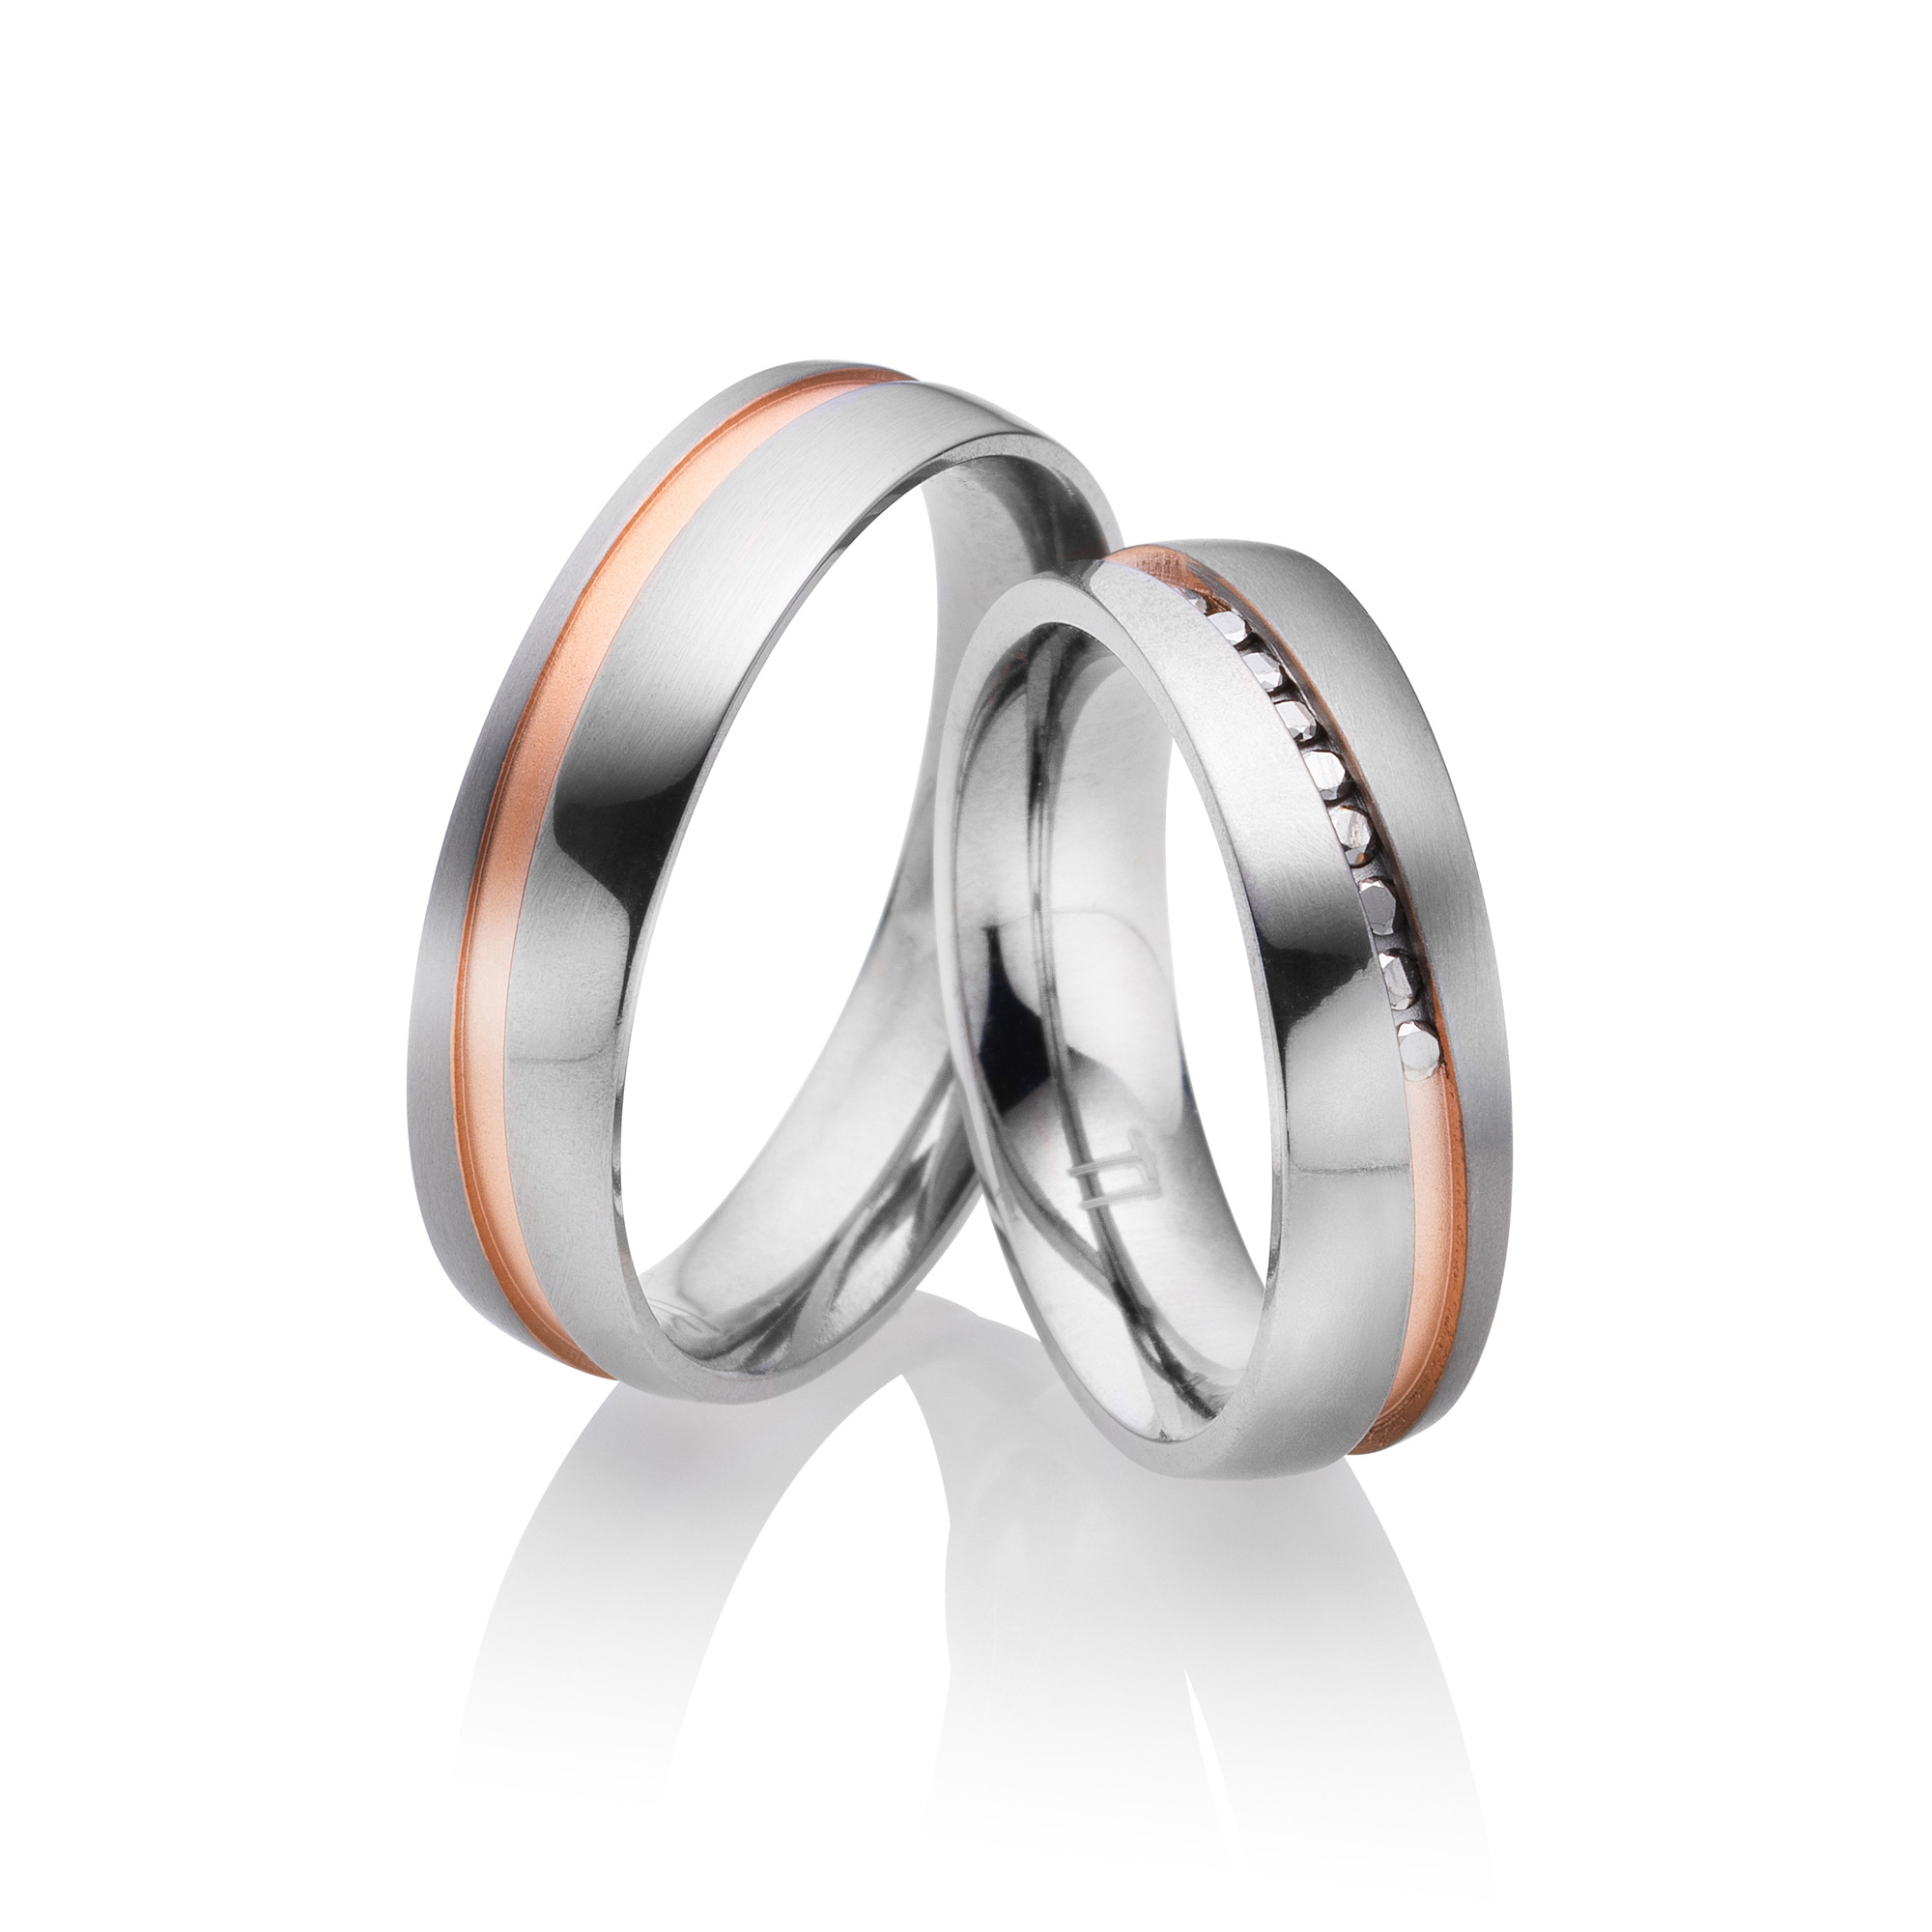 Titan Eheringe Partnerringe Paris | Miomi - Tungsten Carbide Jewelry